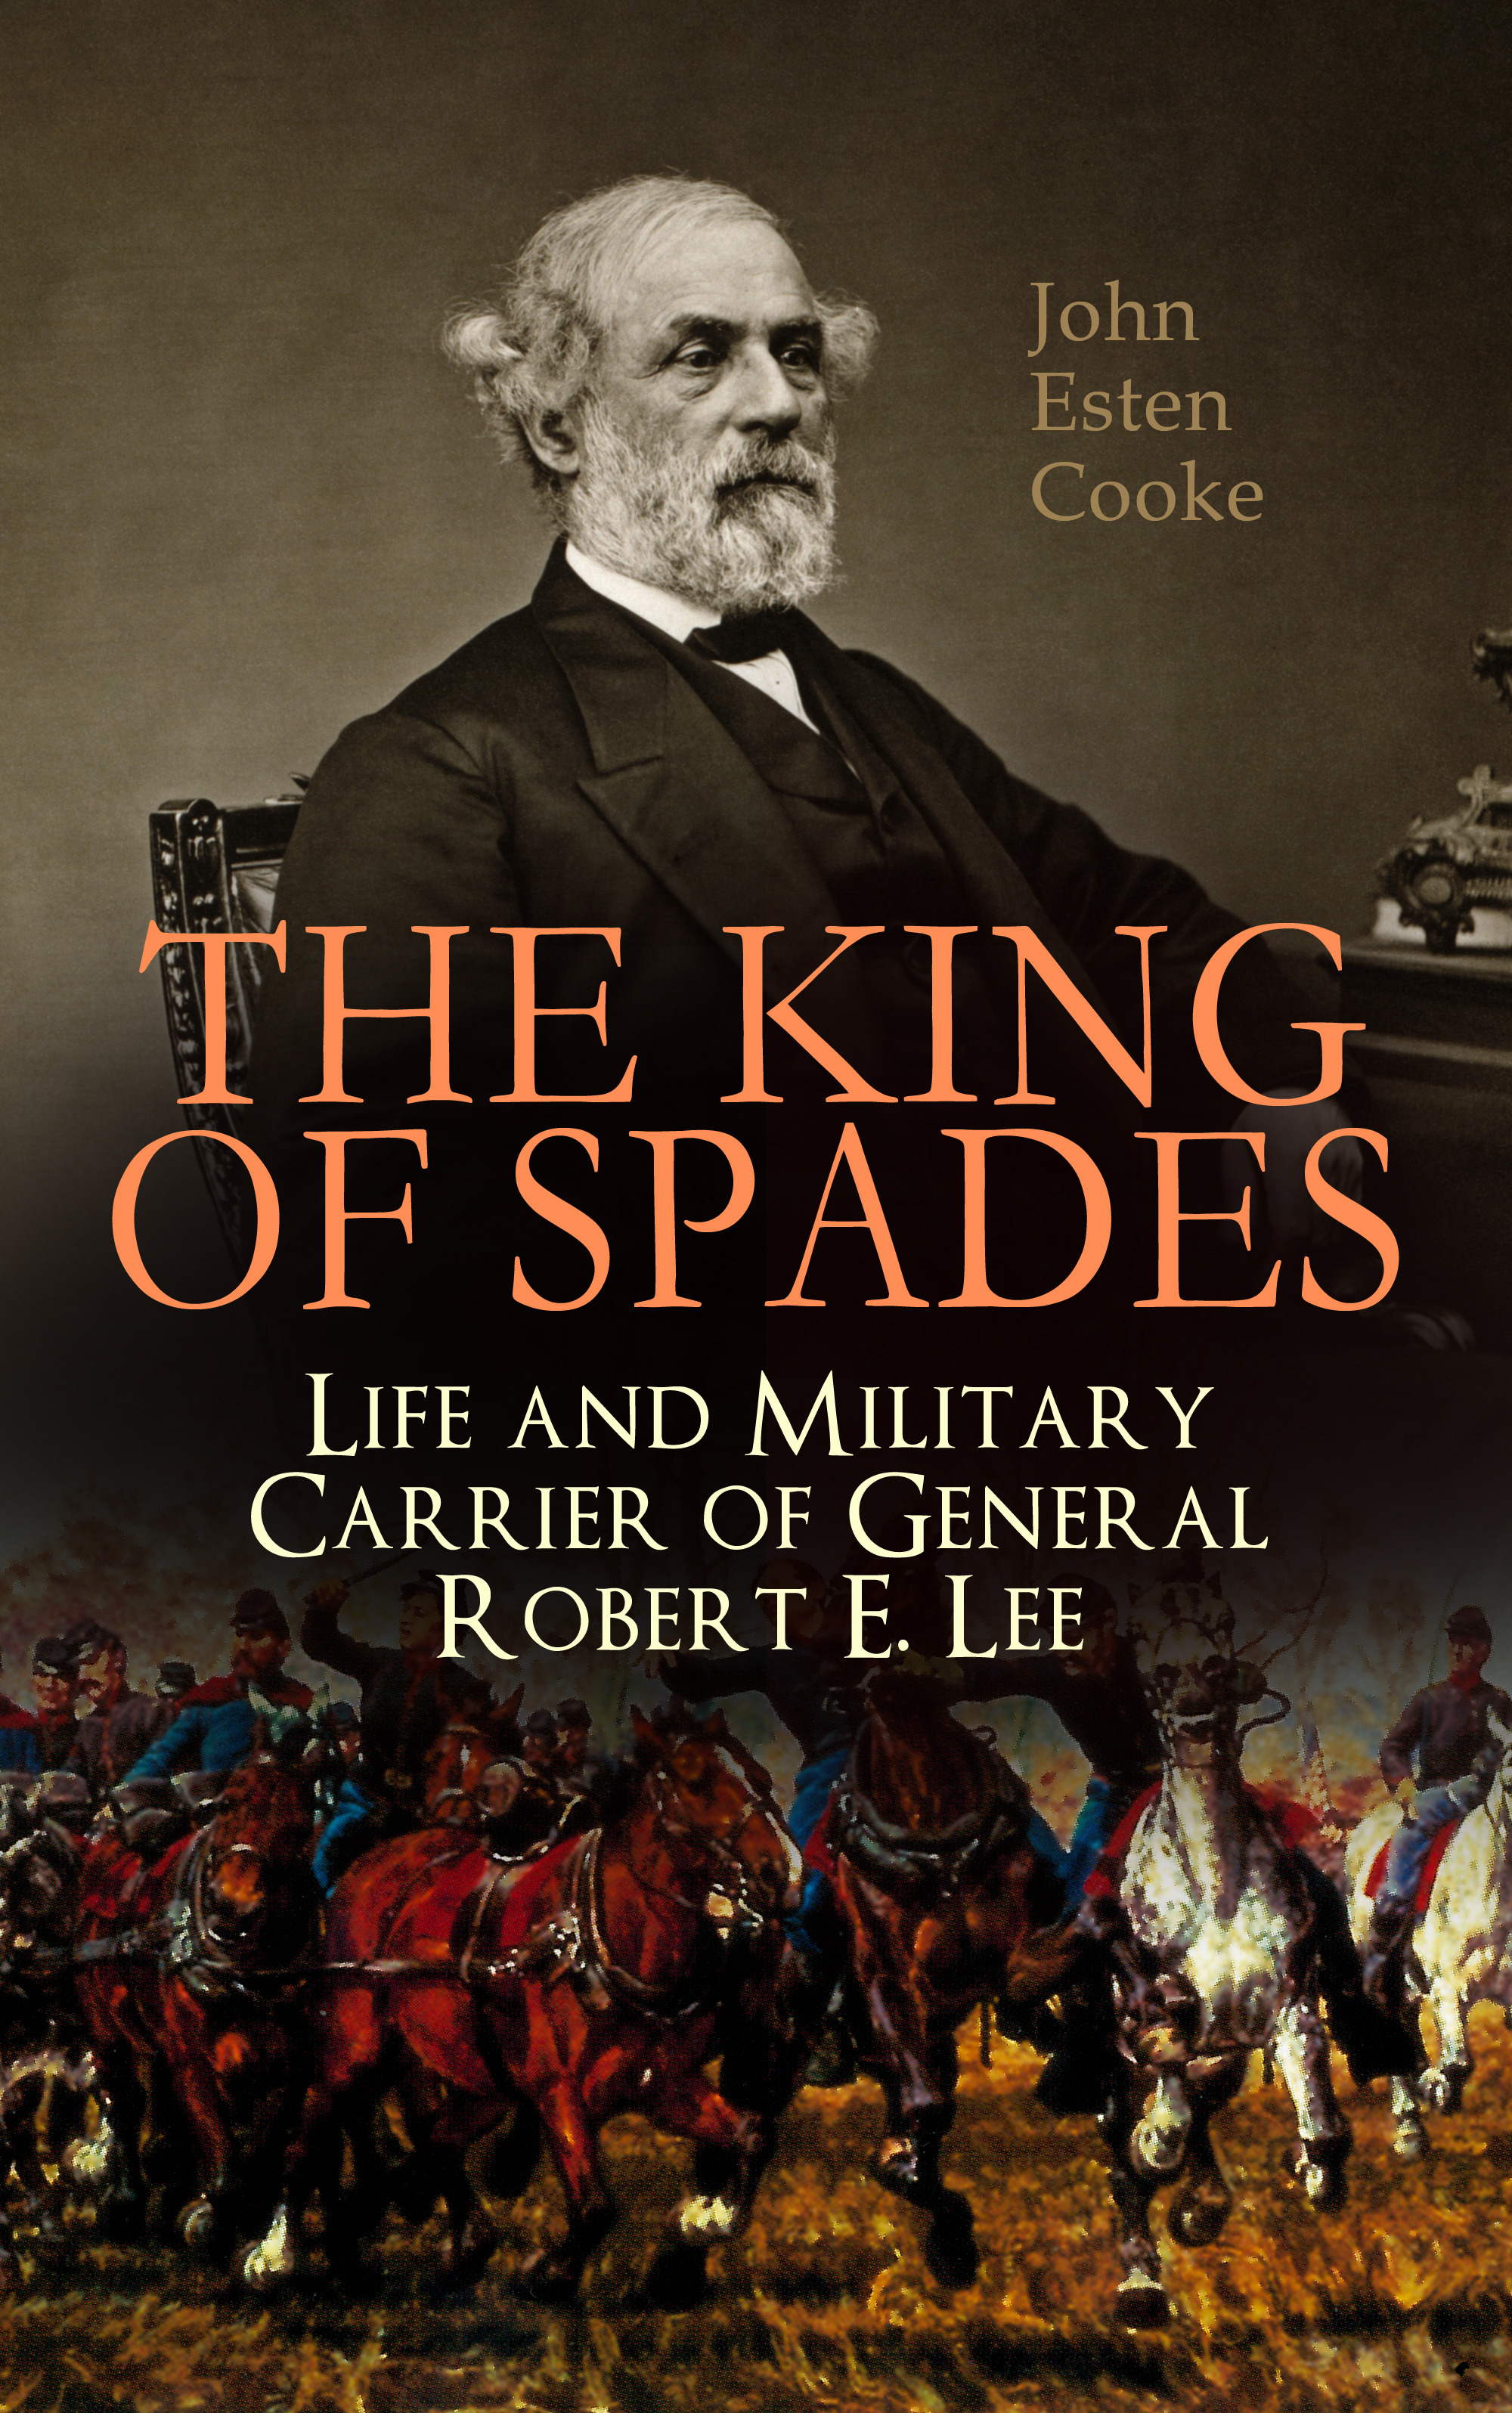 John Esten Cooke The King of Spades – Life and Military Carrier of General Robert E. Lee viewing olmsted – photographs by robert burley lee friedlander